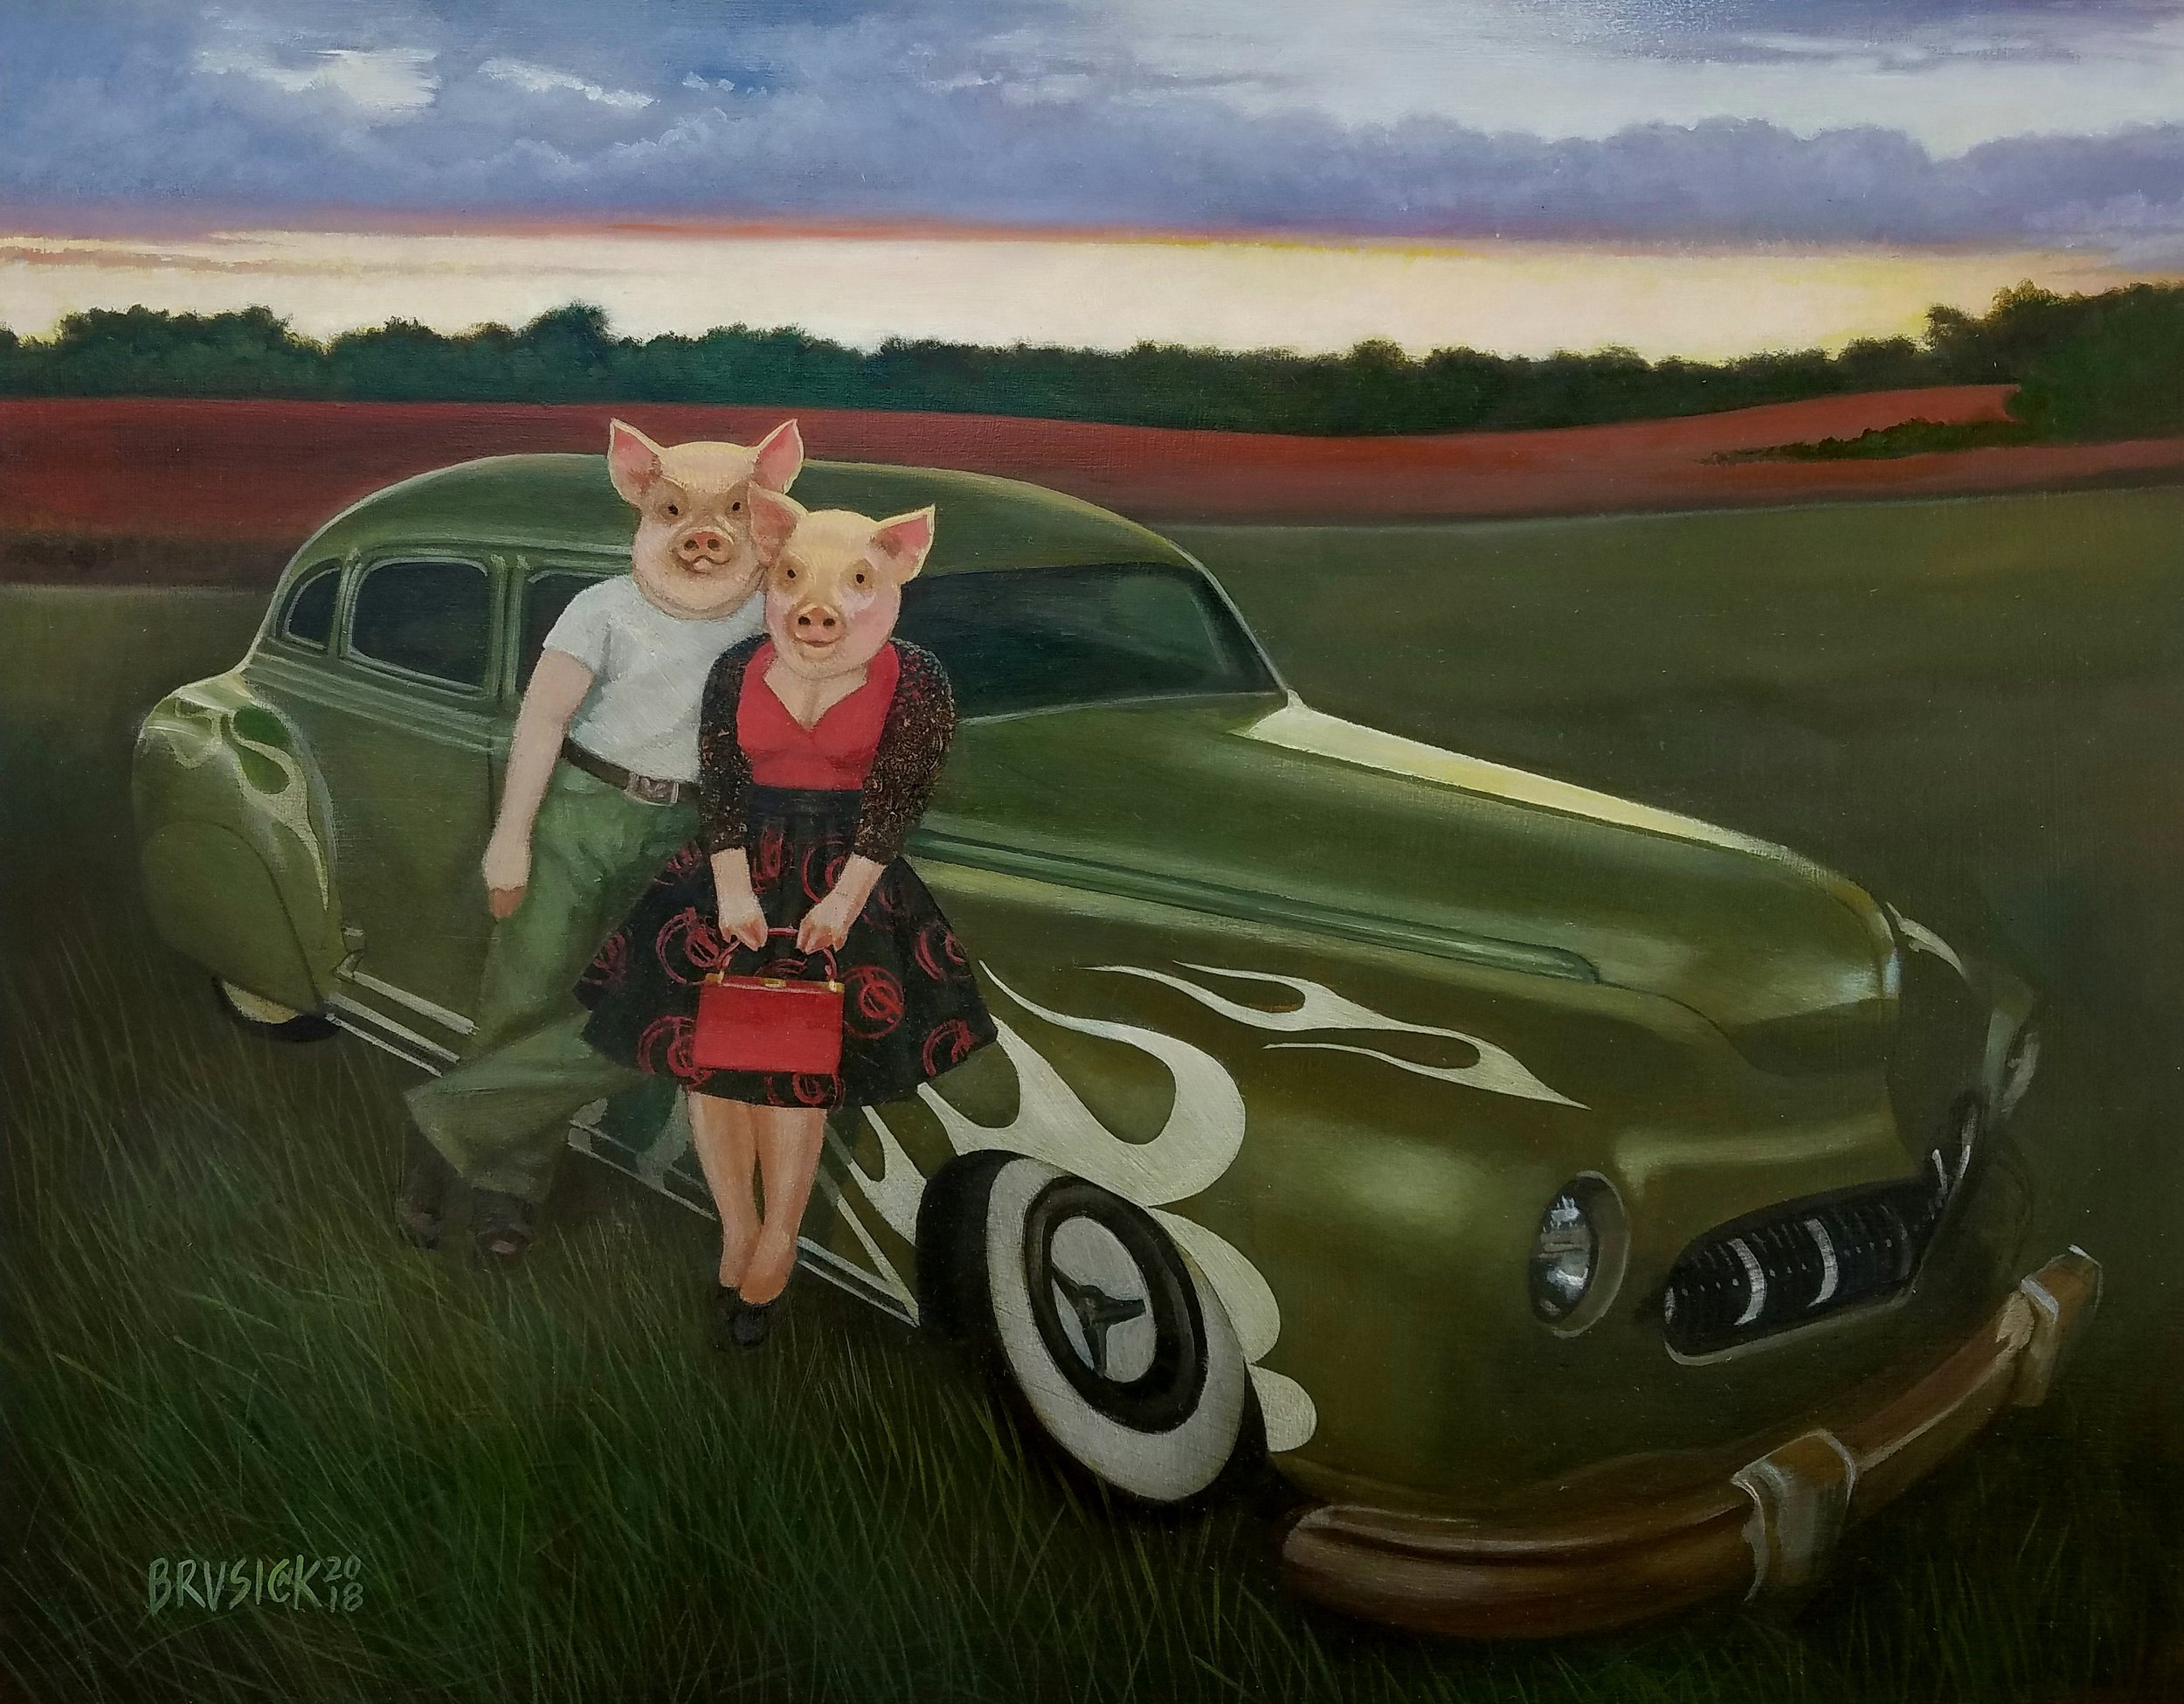 Rockabilly Pigs   2018, Oil on Wood, 8 x 10 inches